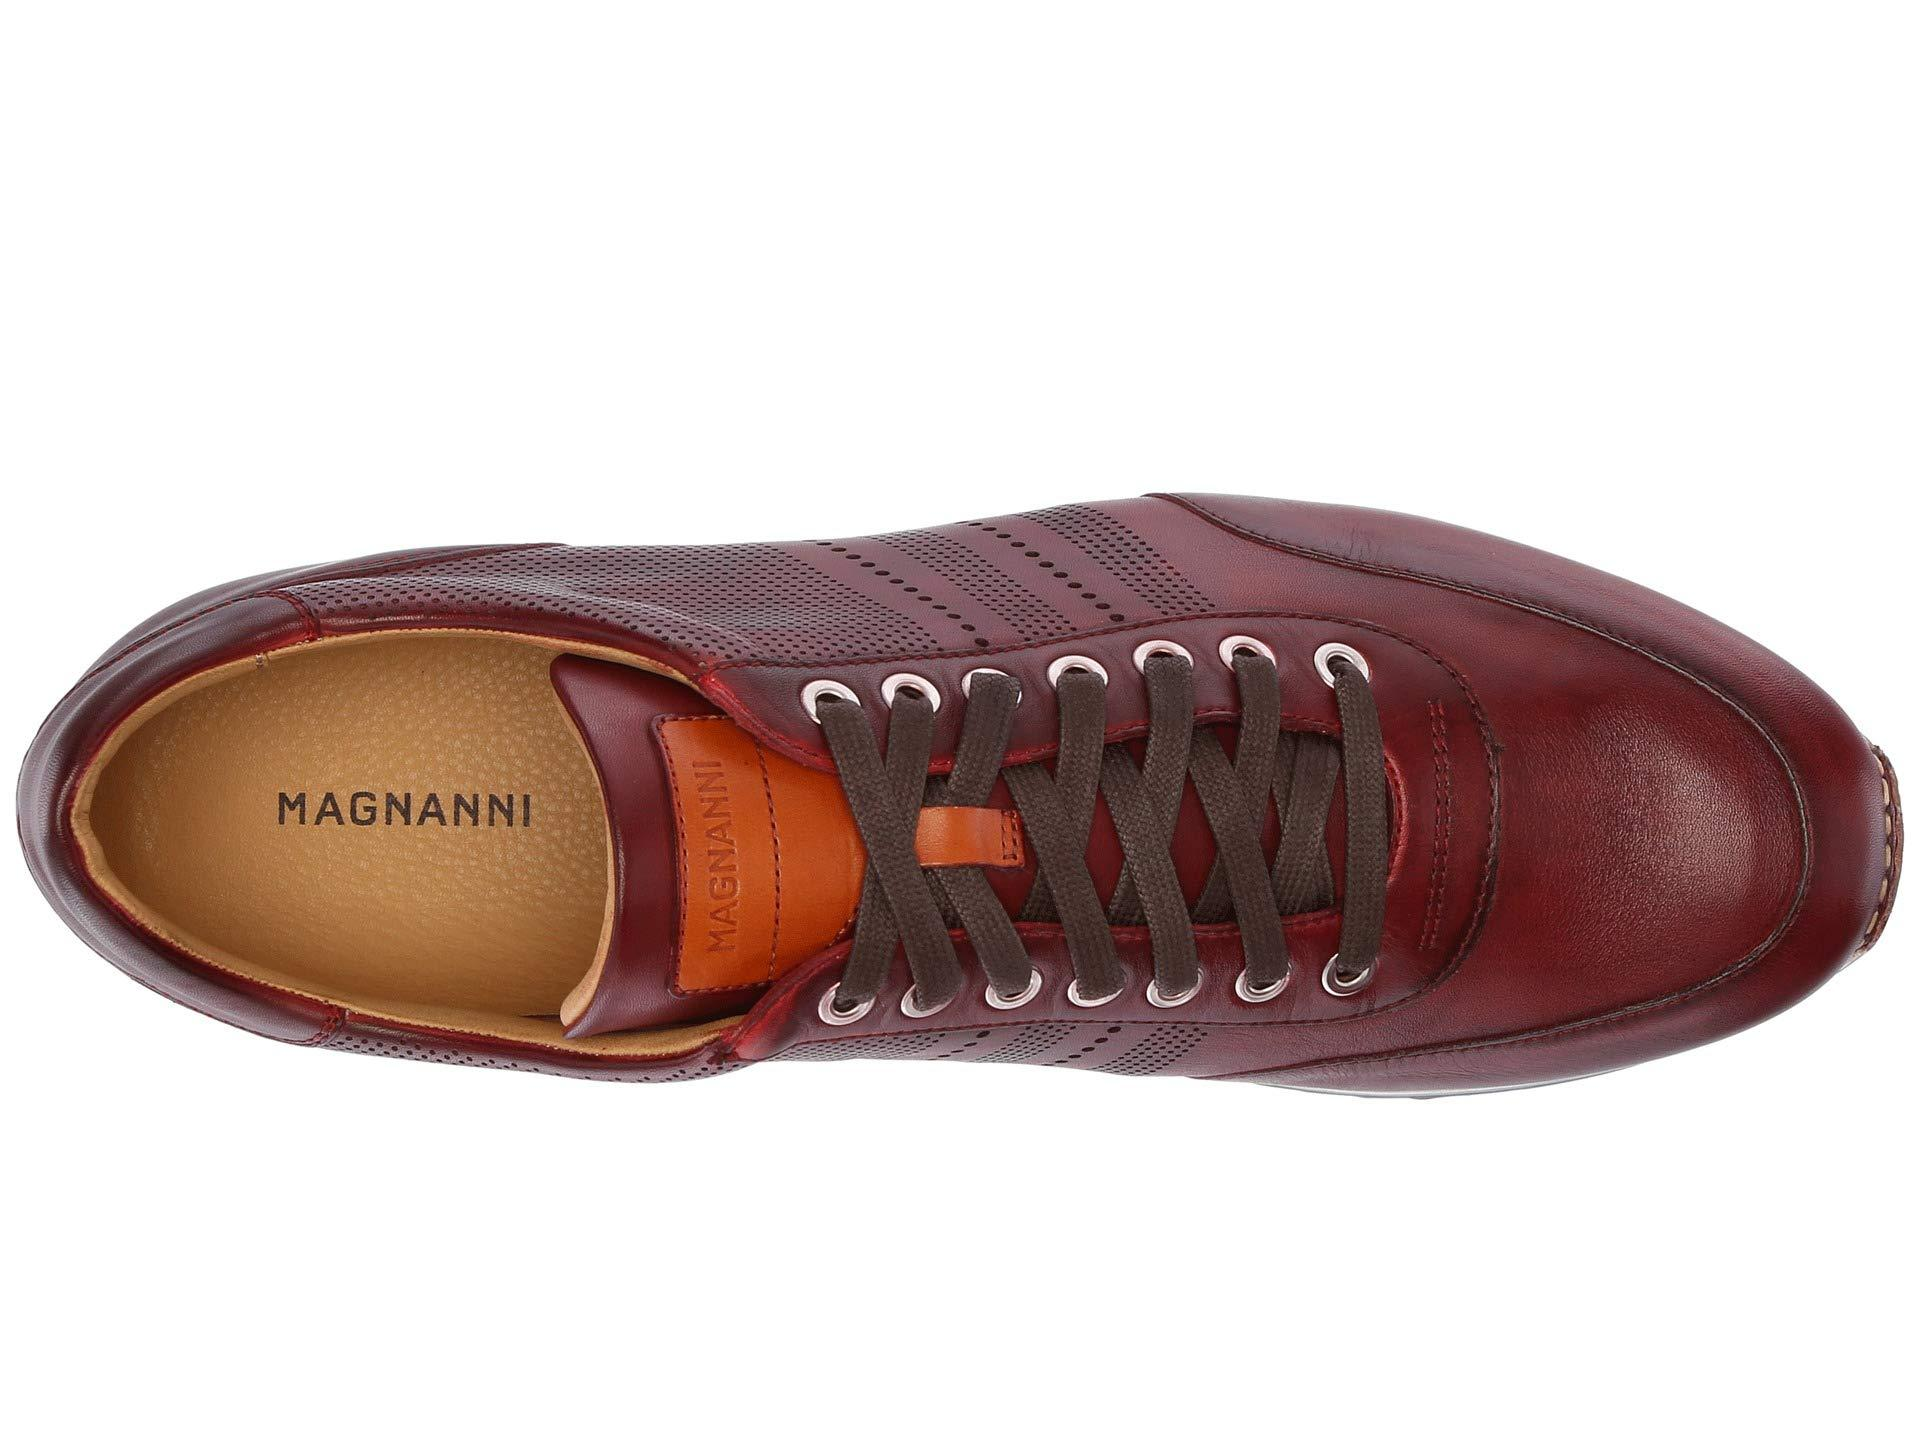 Magnanni Leather Merino Tinto in Red